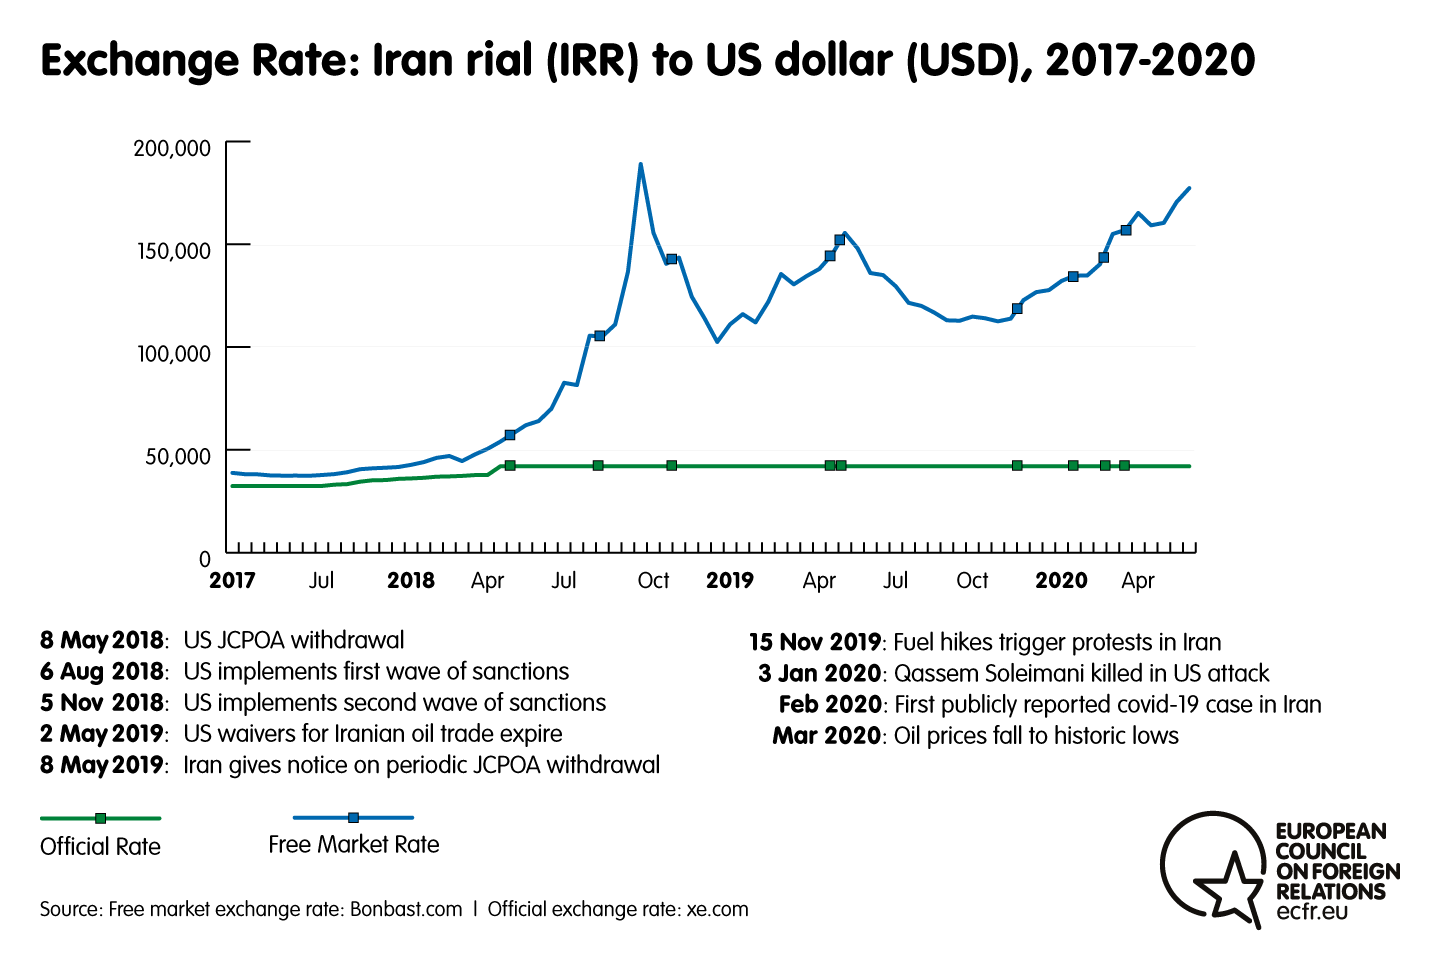 Chart of the exchange rate: Iran rial to US dollar, 2017-2020